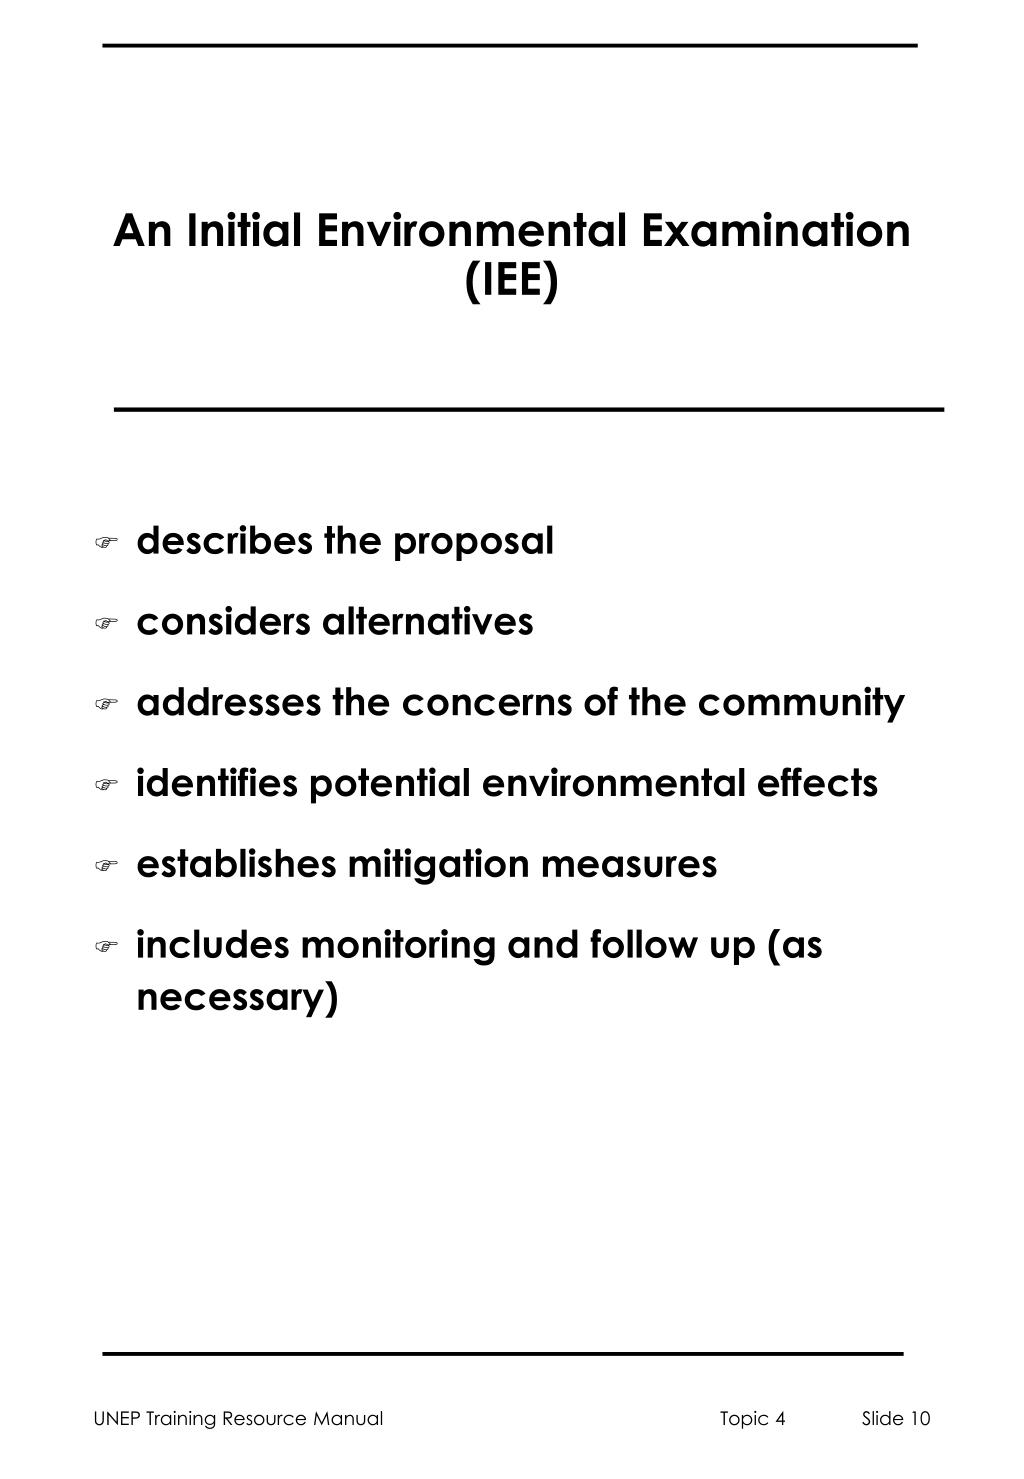 An Initial Environmental Examination (IEE)